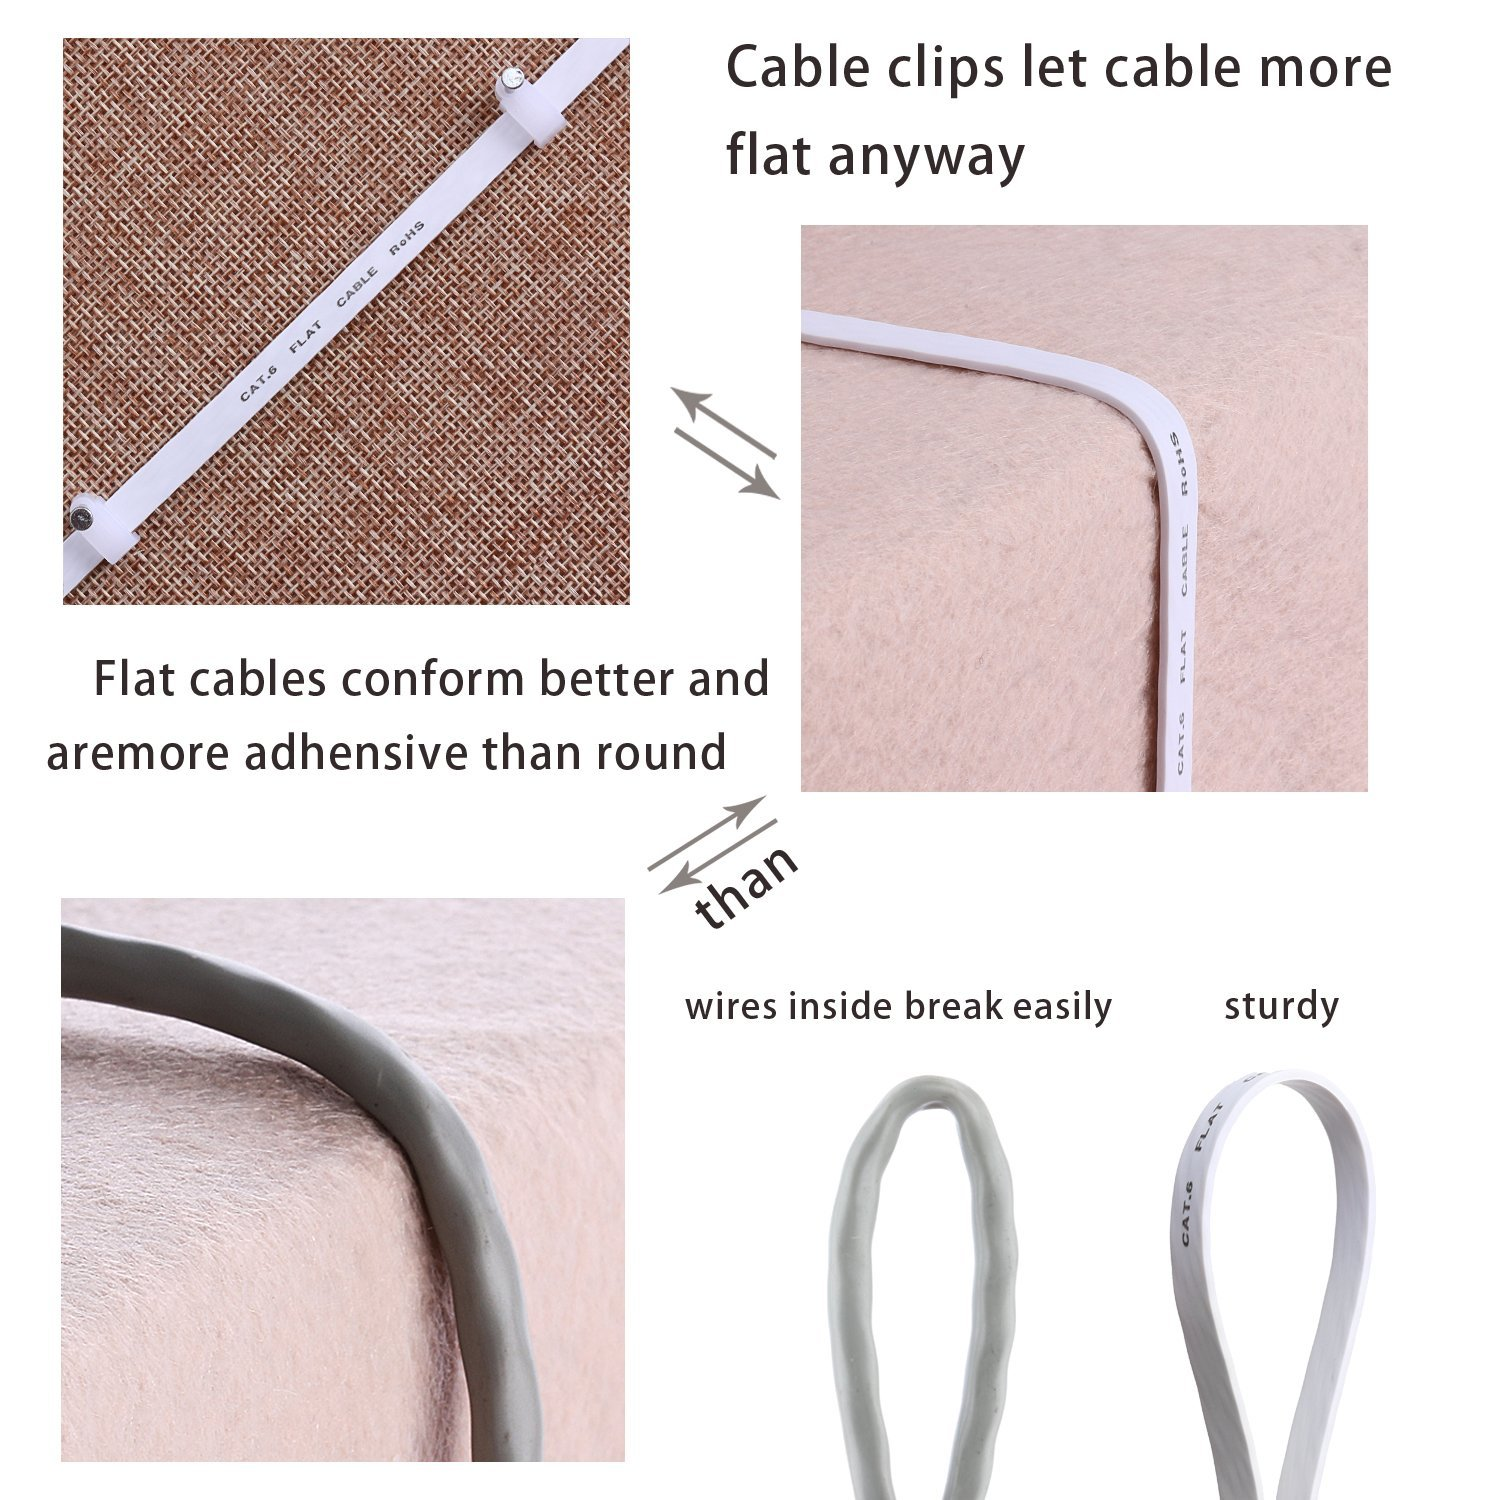 Cat 6 Ethernet Cable 75 Ft White With Clips Flat Network Cables Cat5e Patch 32 Awg 35 Foot Internet Computer Lan Cat6